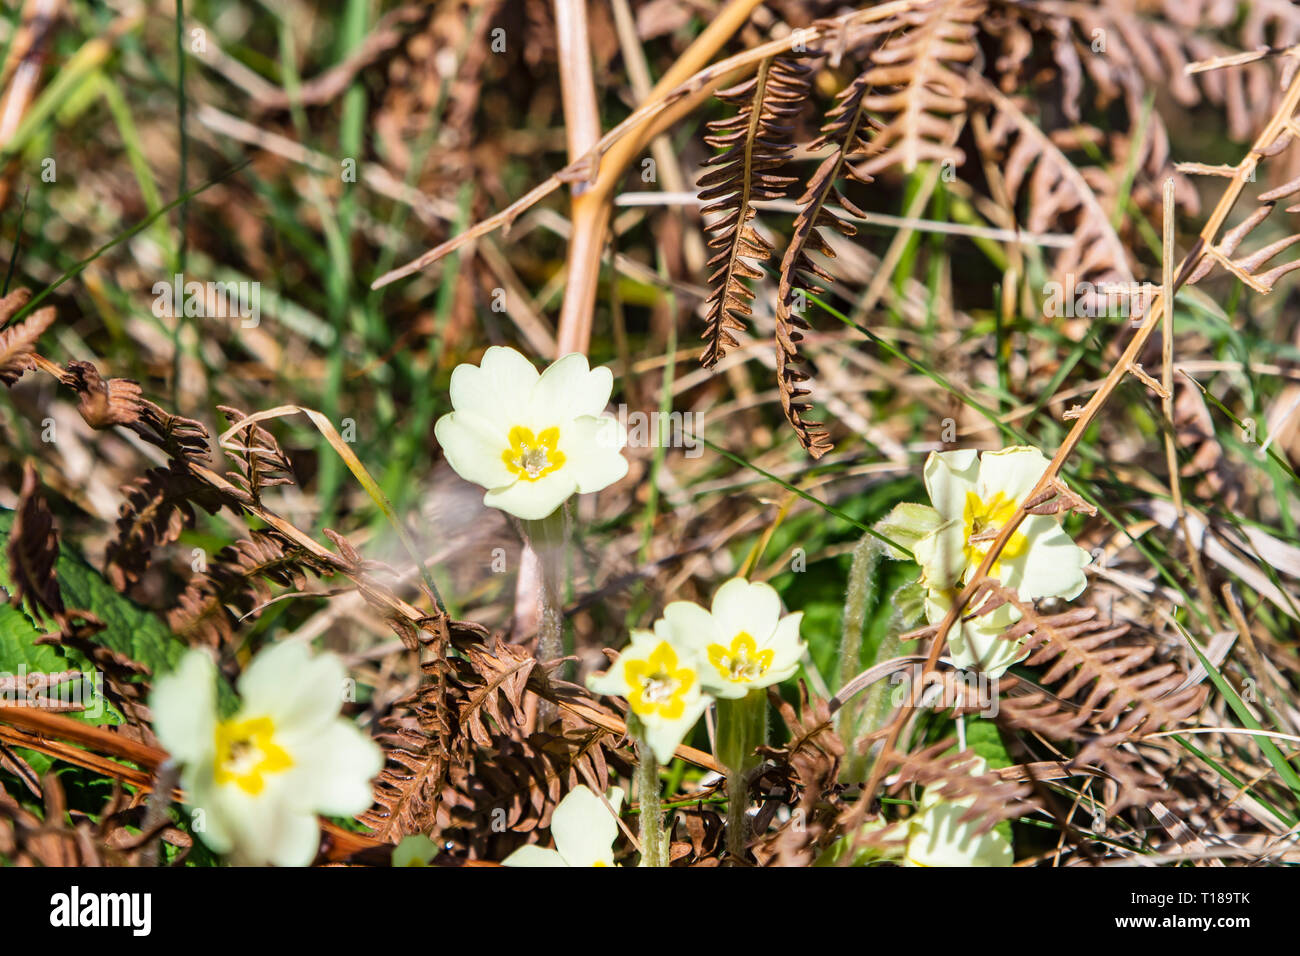 Bray Head, Ireland. 24th March, 2019 Spring is came. Wild flowers showing their beauty under the Sun. Credit: Vitaliy Tuzov/Alamy Live News. - Stock Image